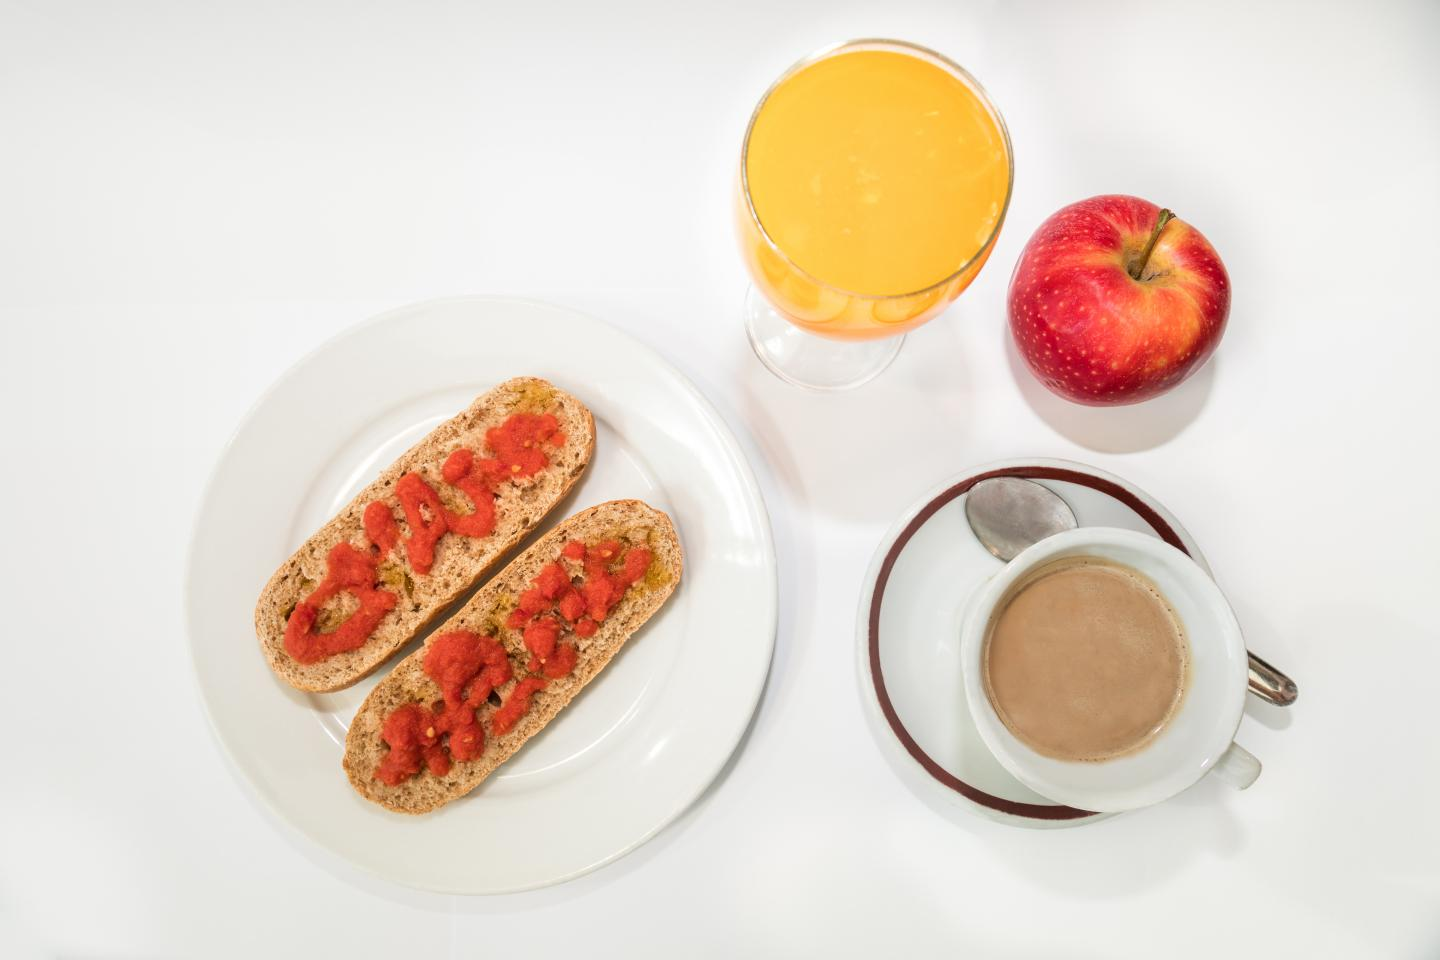 CNIC experts say the best way to start the day is a 'high-energy' breakfast, which could consist of a cup of coffee, milk or yogurt, fruit, and wholemeal bread with tomato and olive oil. Source: CNIC